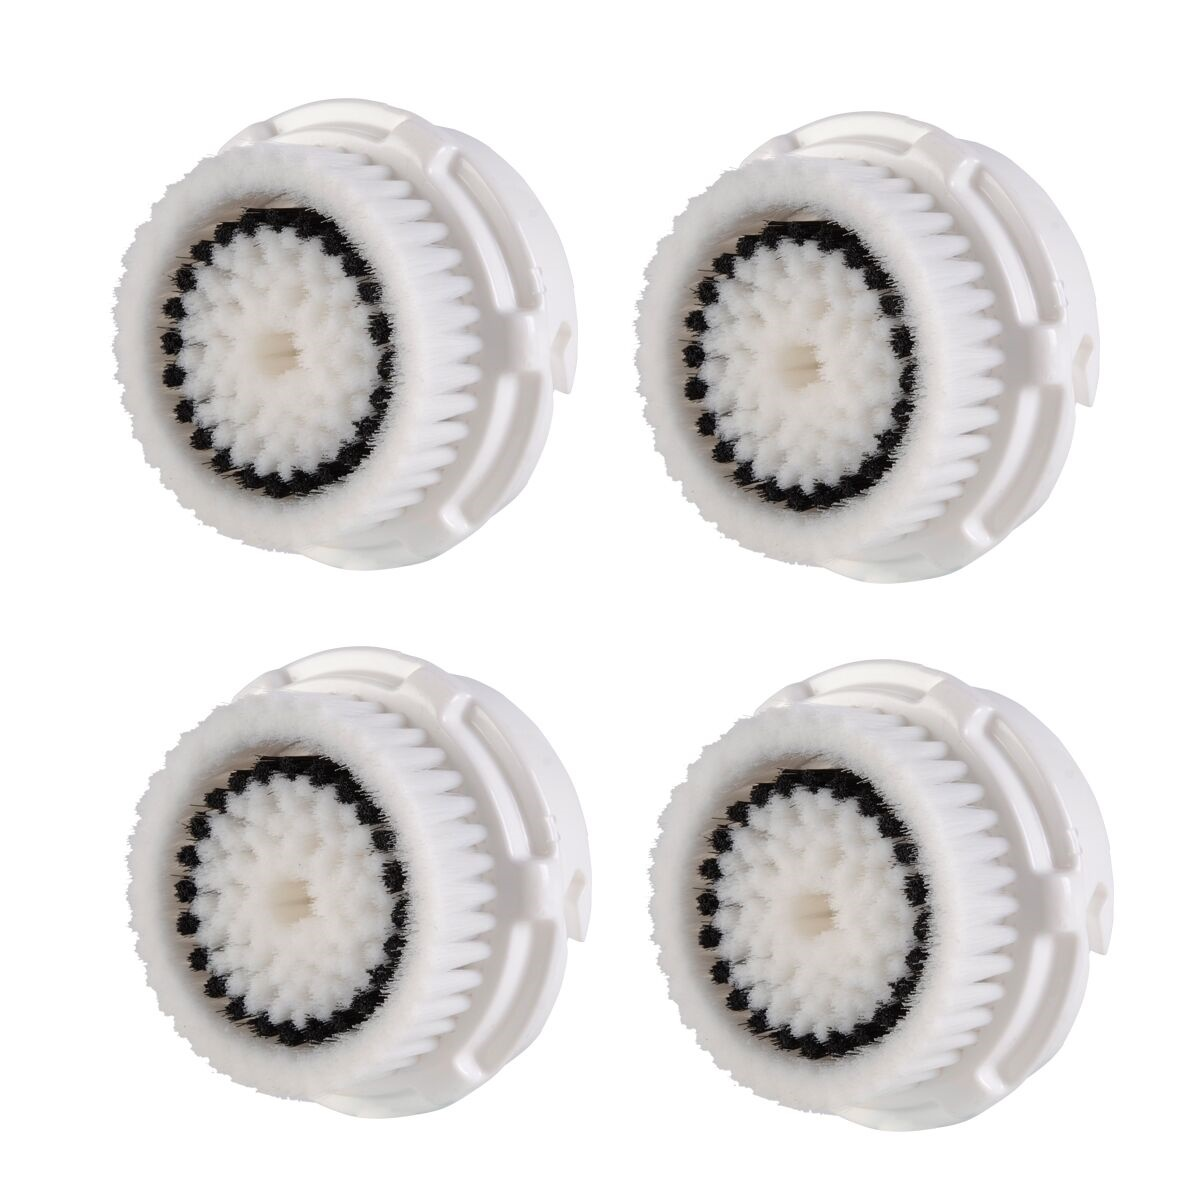 PURSONIC FBHA4 ACNE 4PACK REPLACEMENT HEADS FOR CLARISONIC